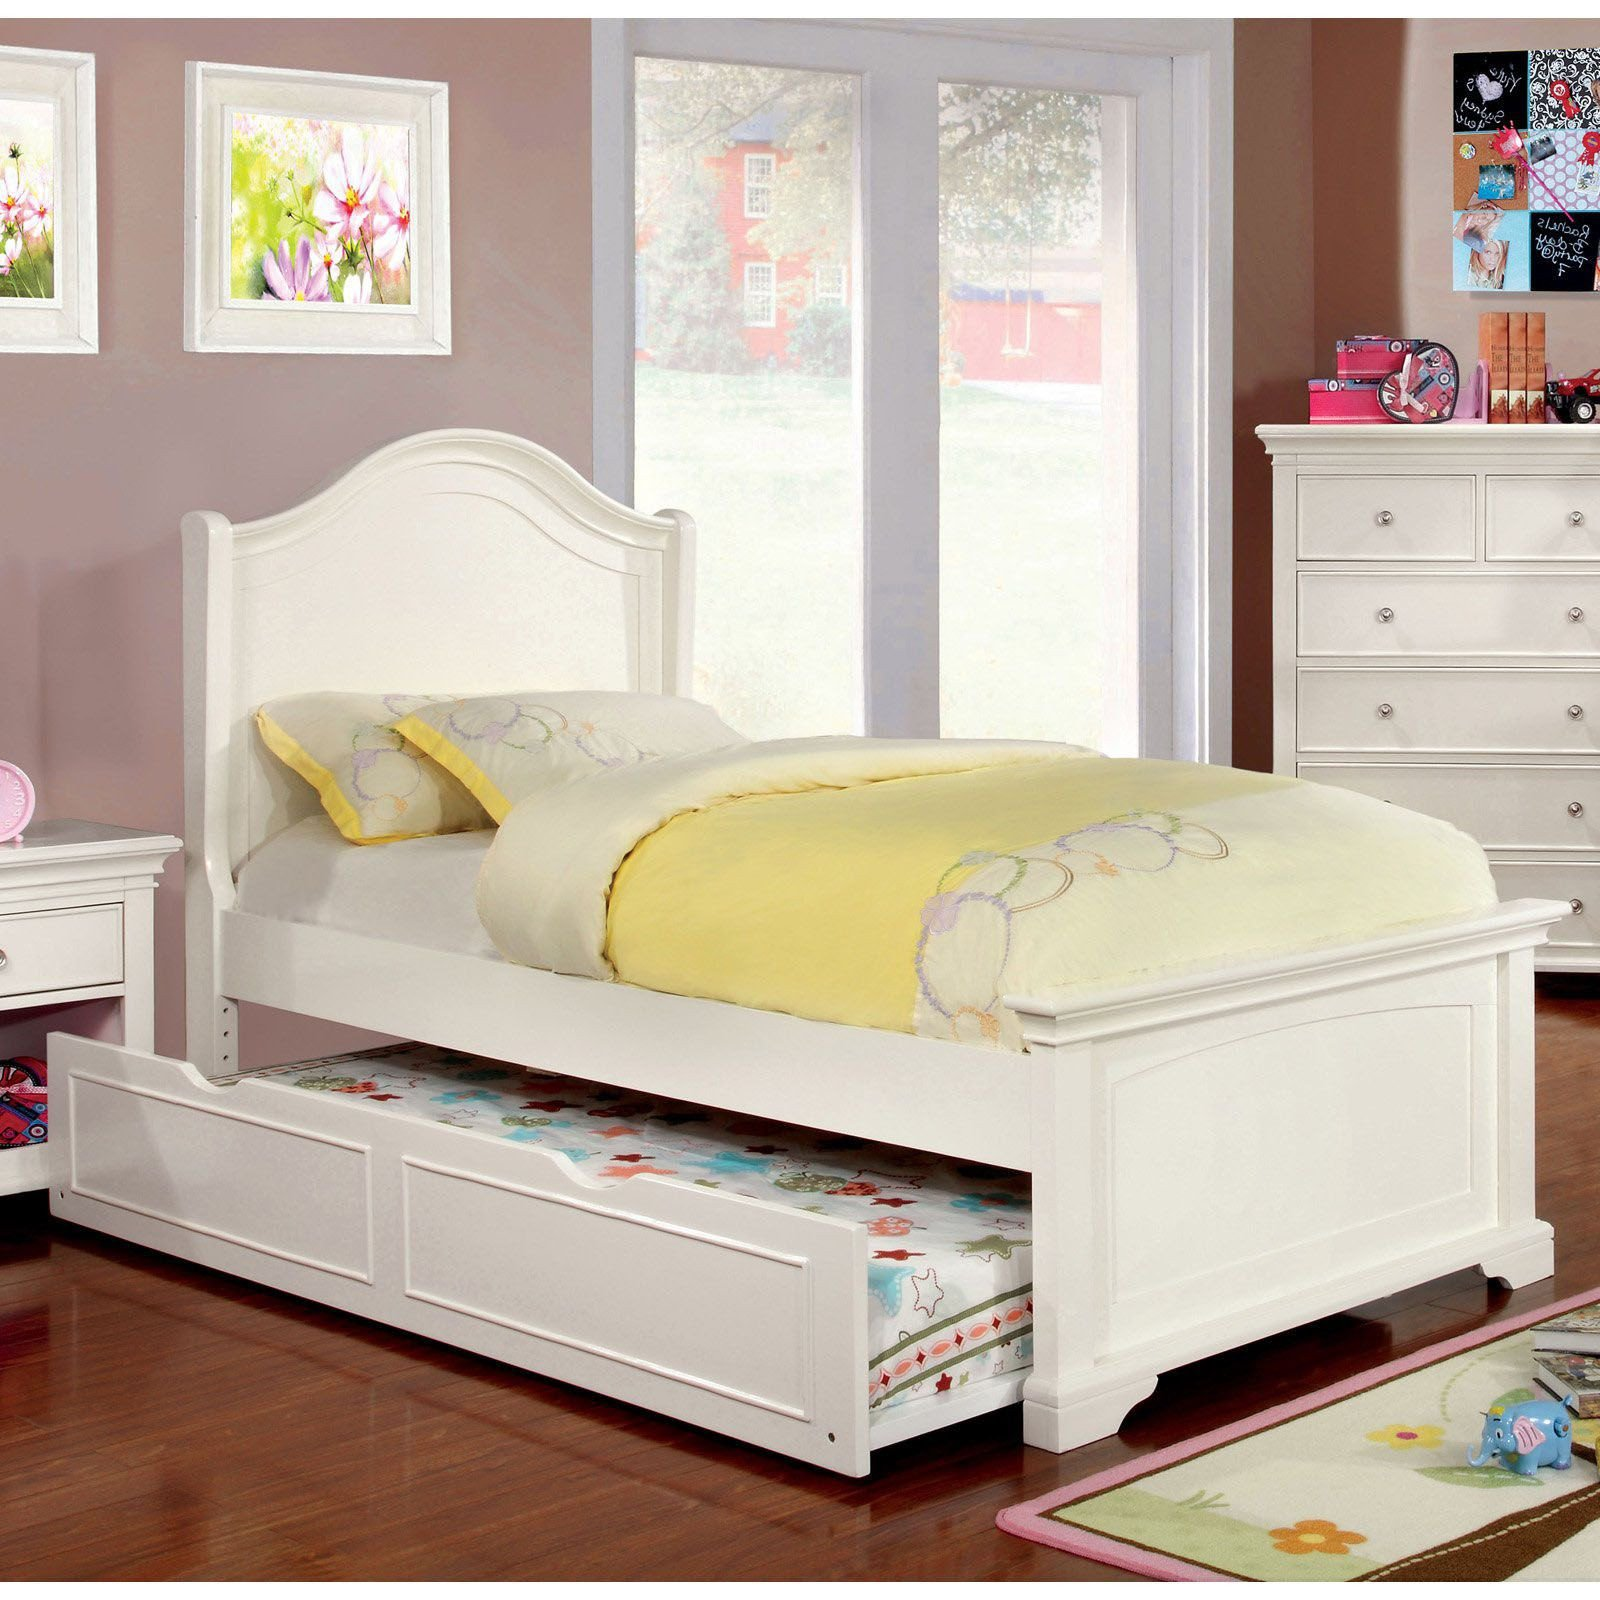 Twin Bedroom Set for Sale New Guest Bedrooms with Captivating Twin Bed Designs